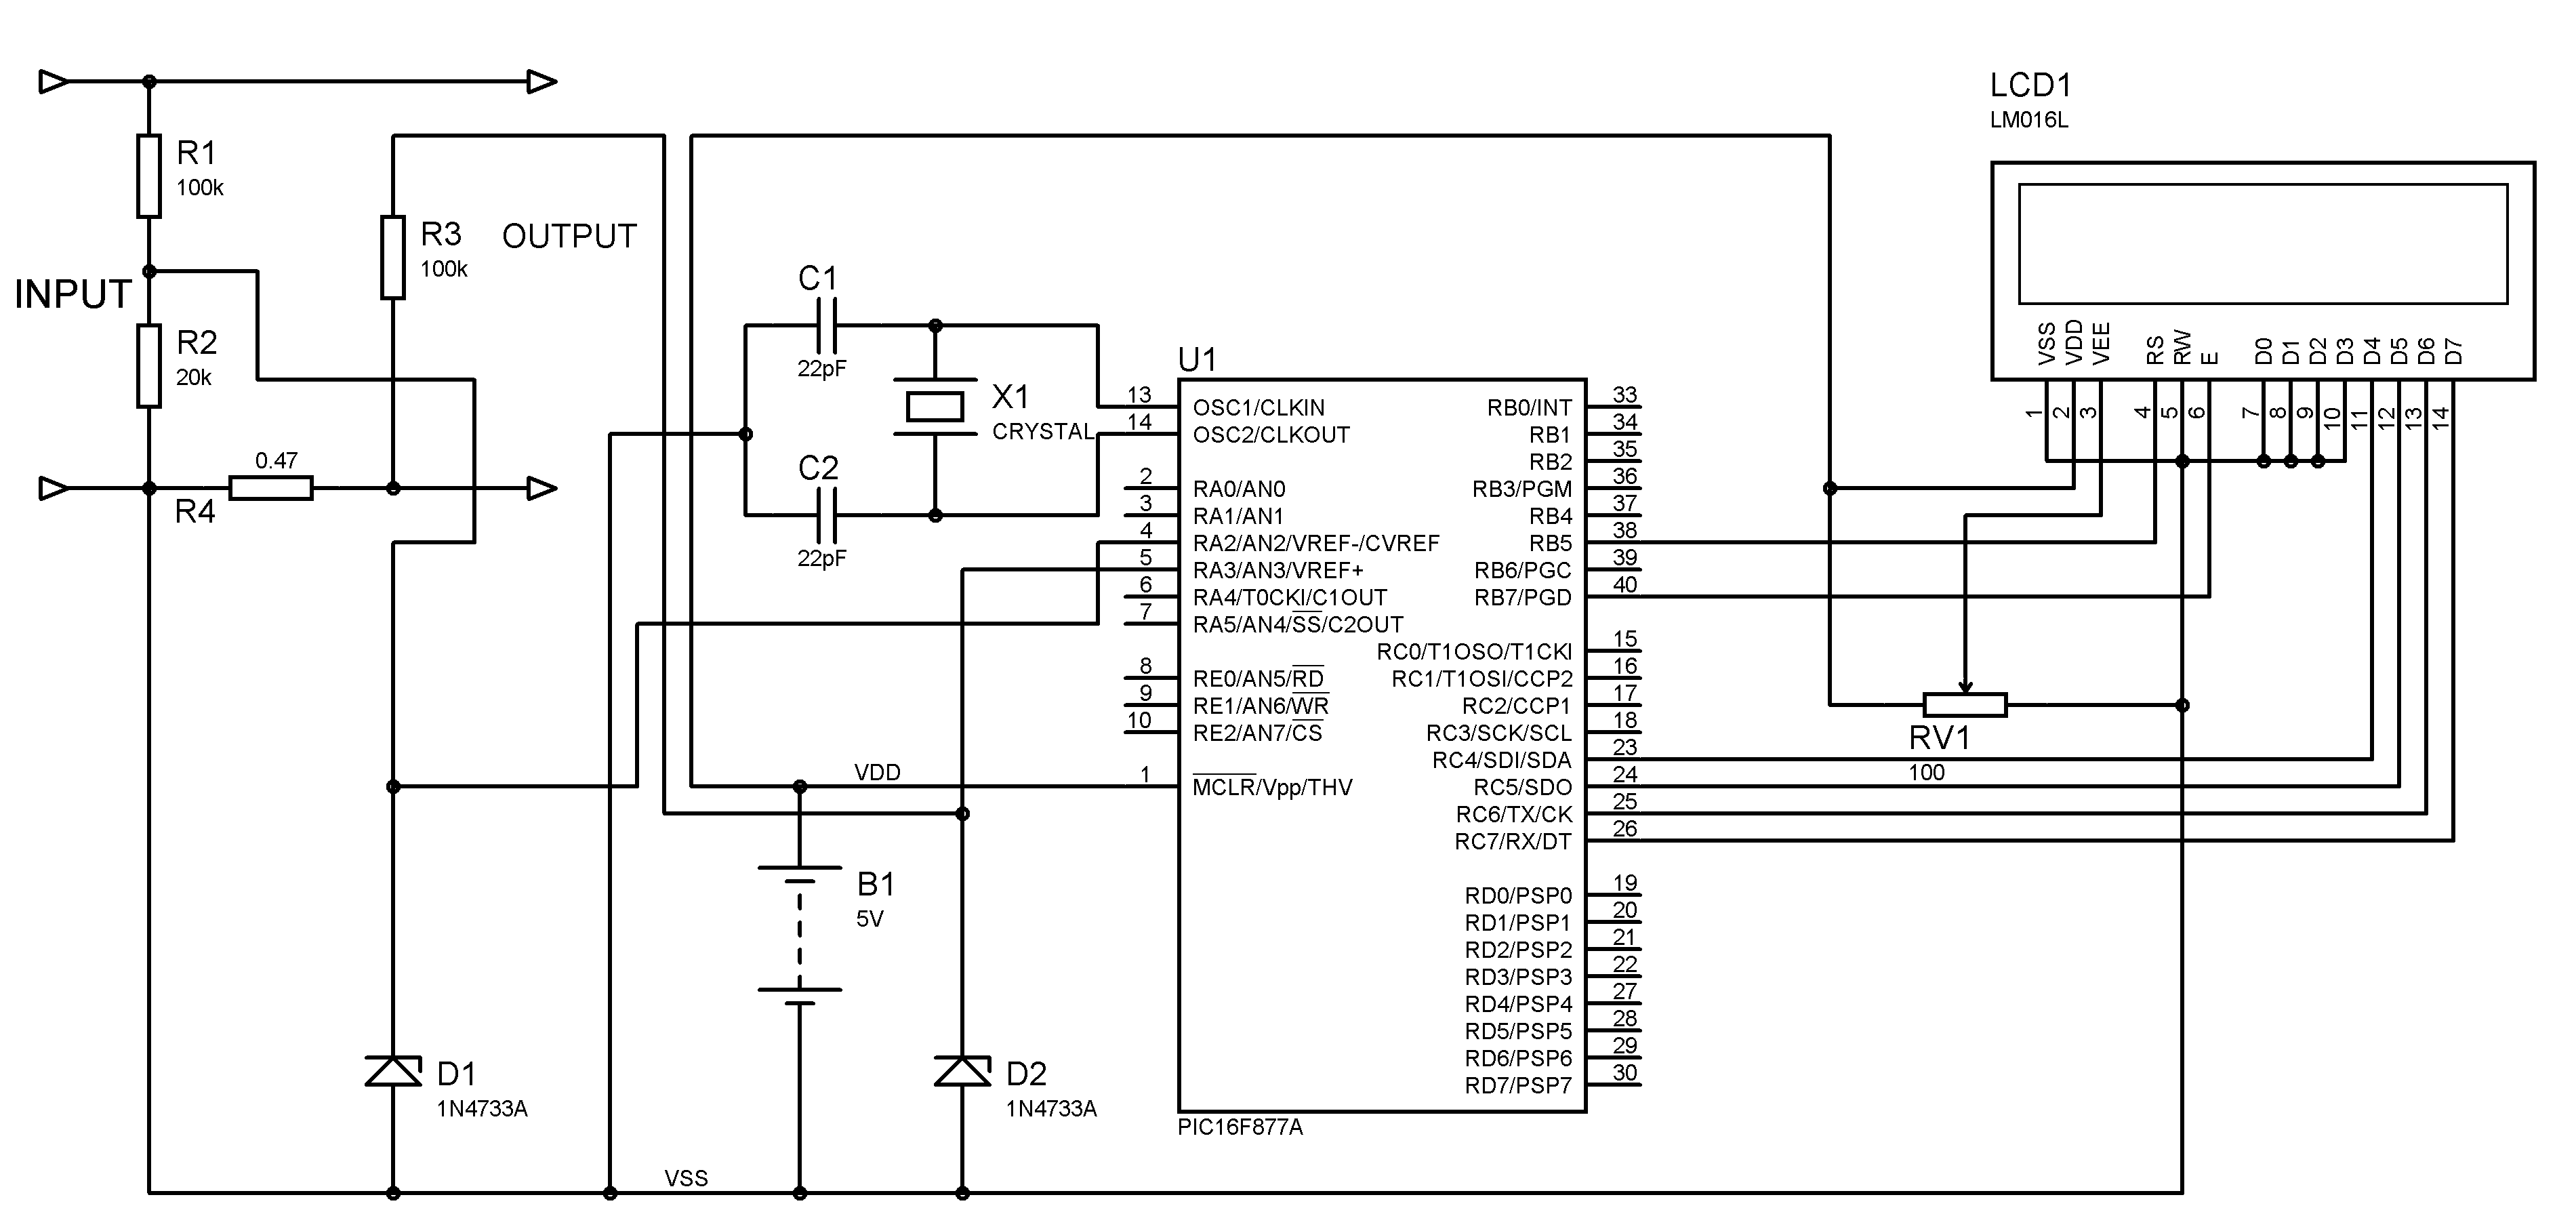 Adc Value Fluctuating In Pic Voltmeter And Ammeter Lcd